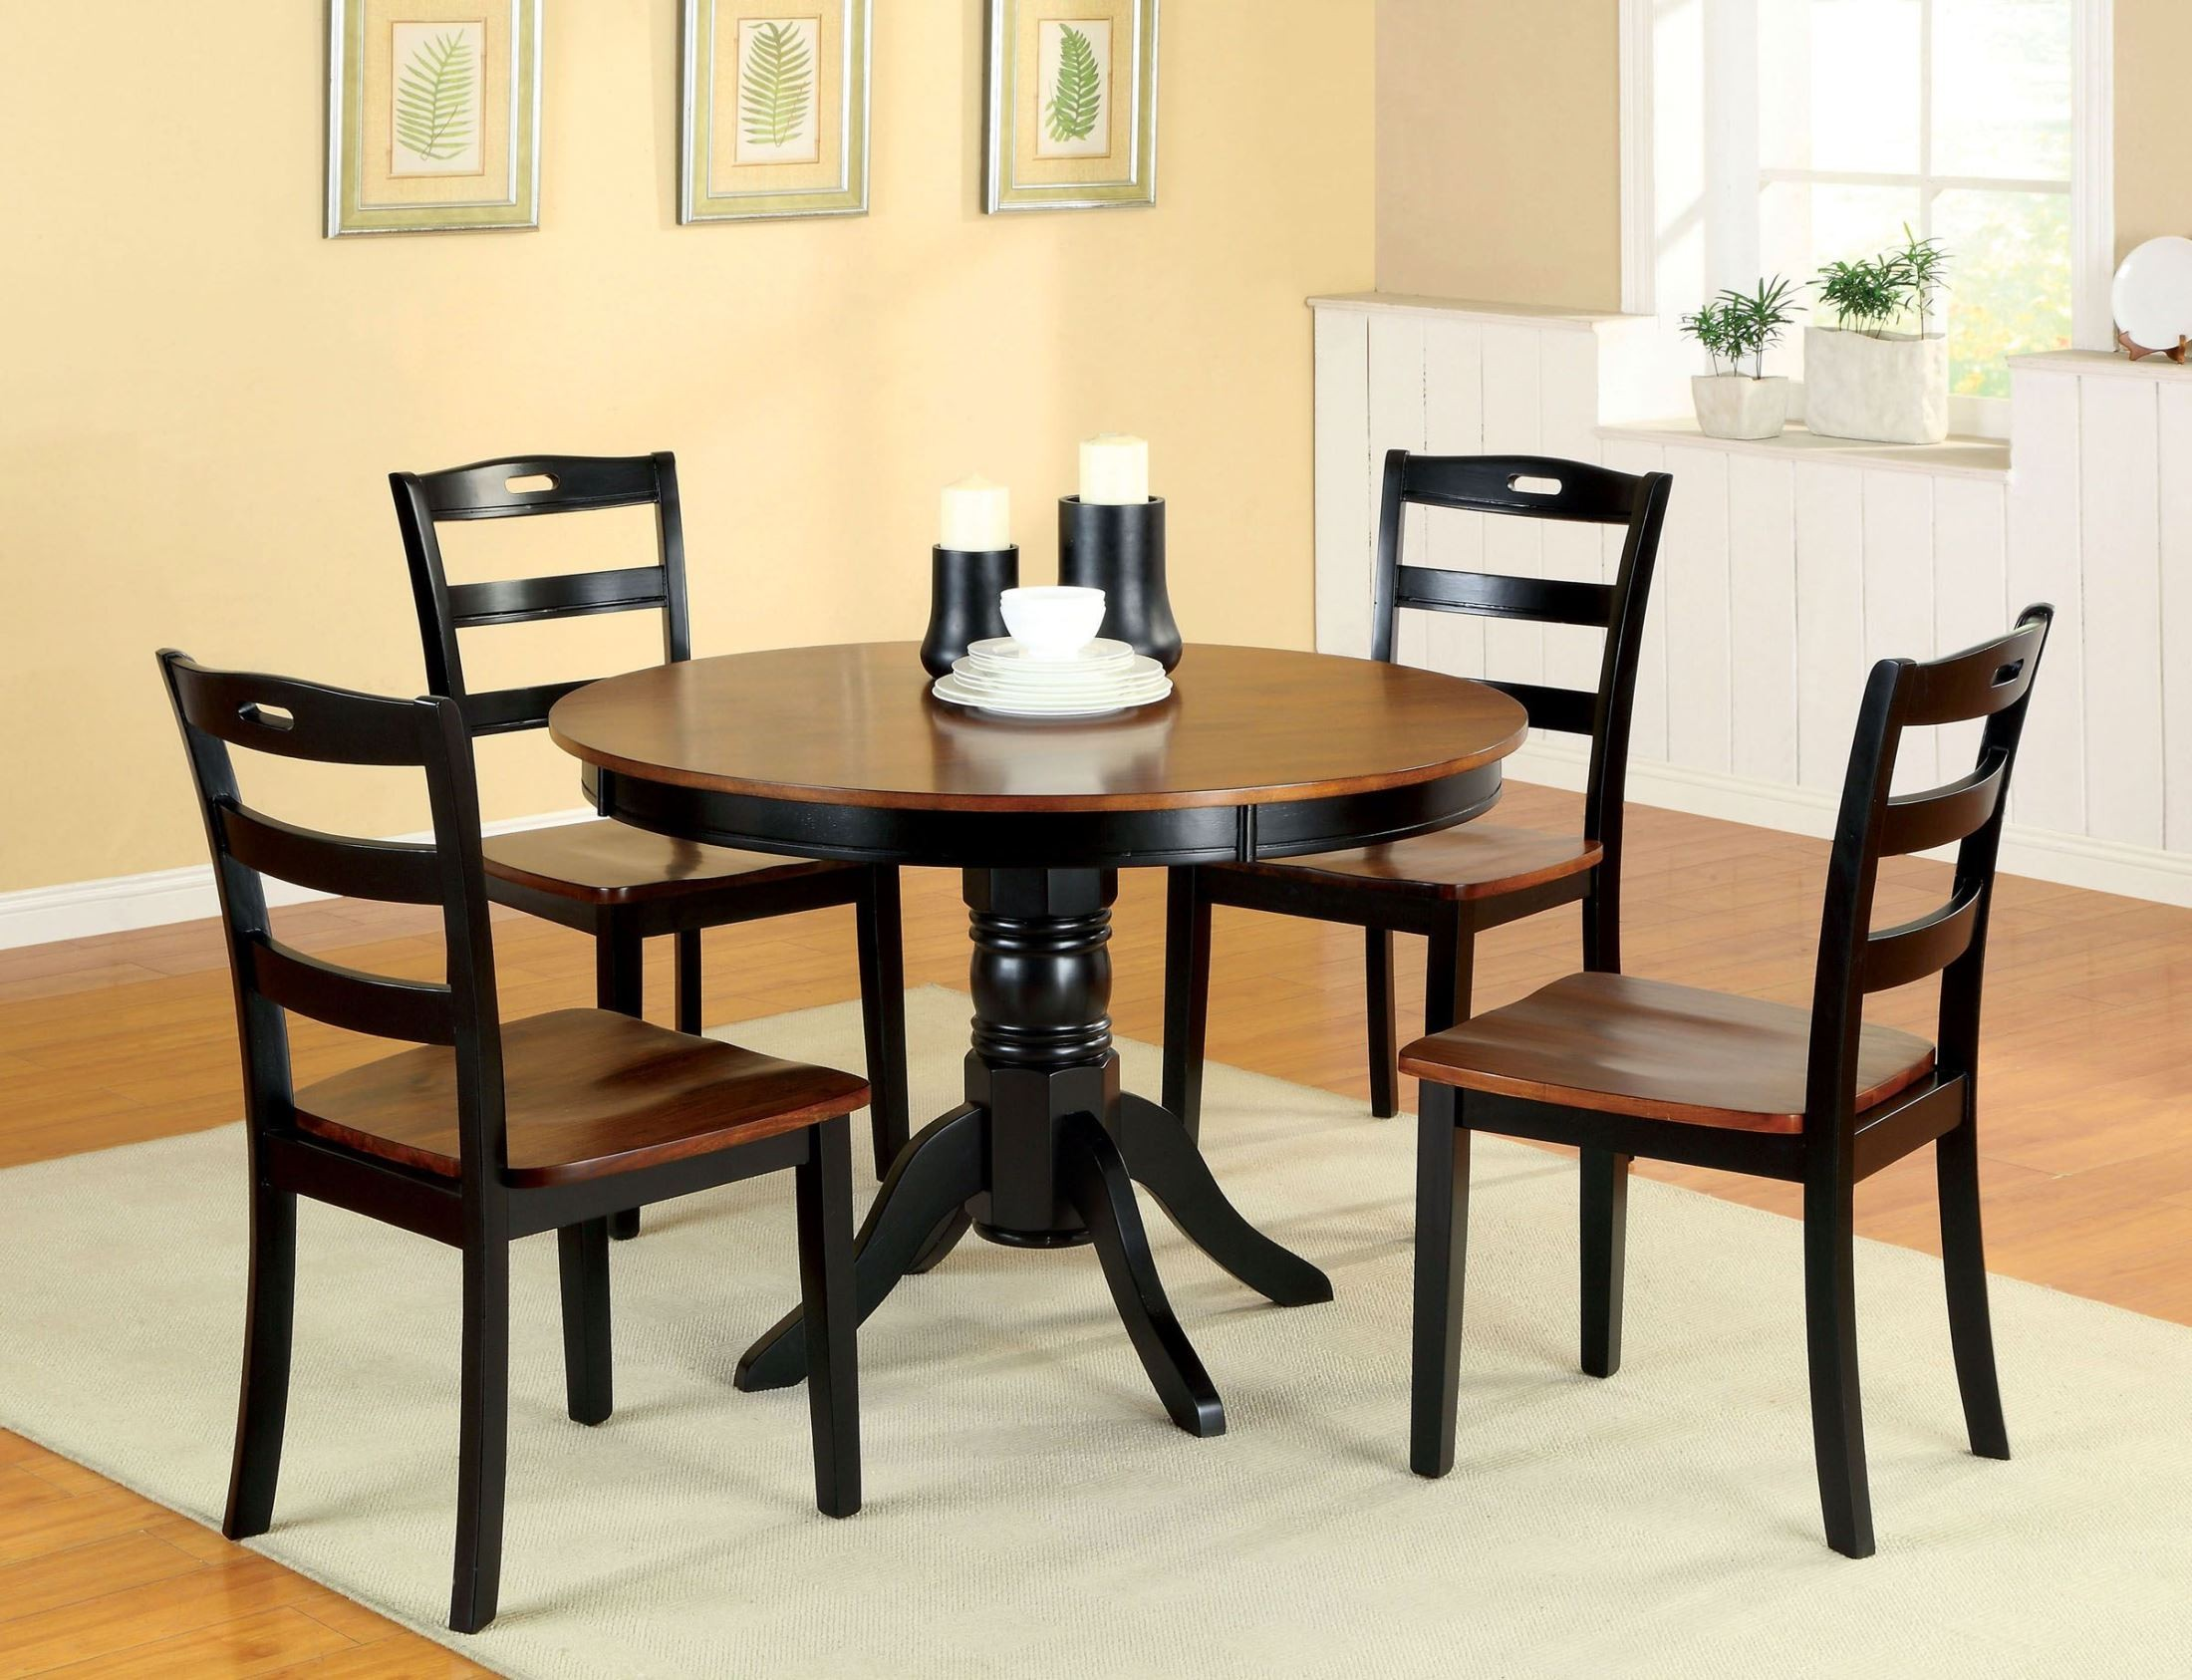 Johnstown antique oak and black round pedestal dining room for Black dining room set